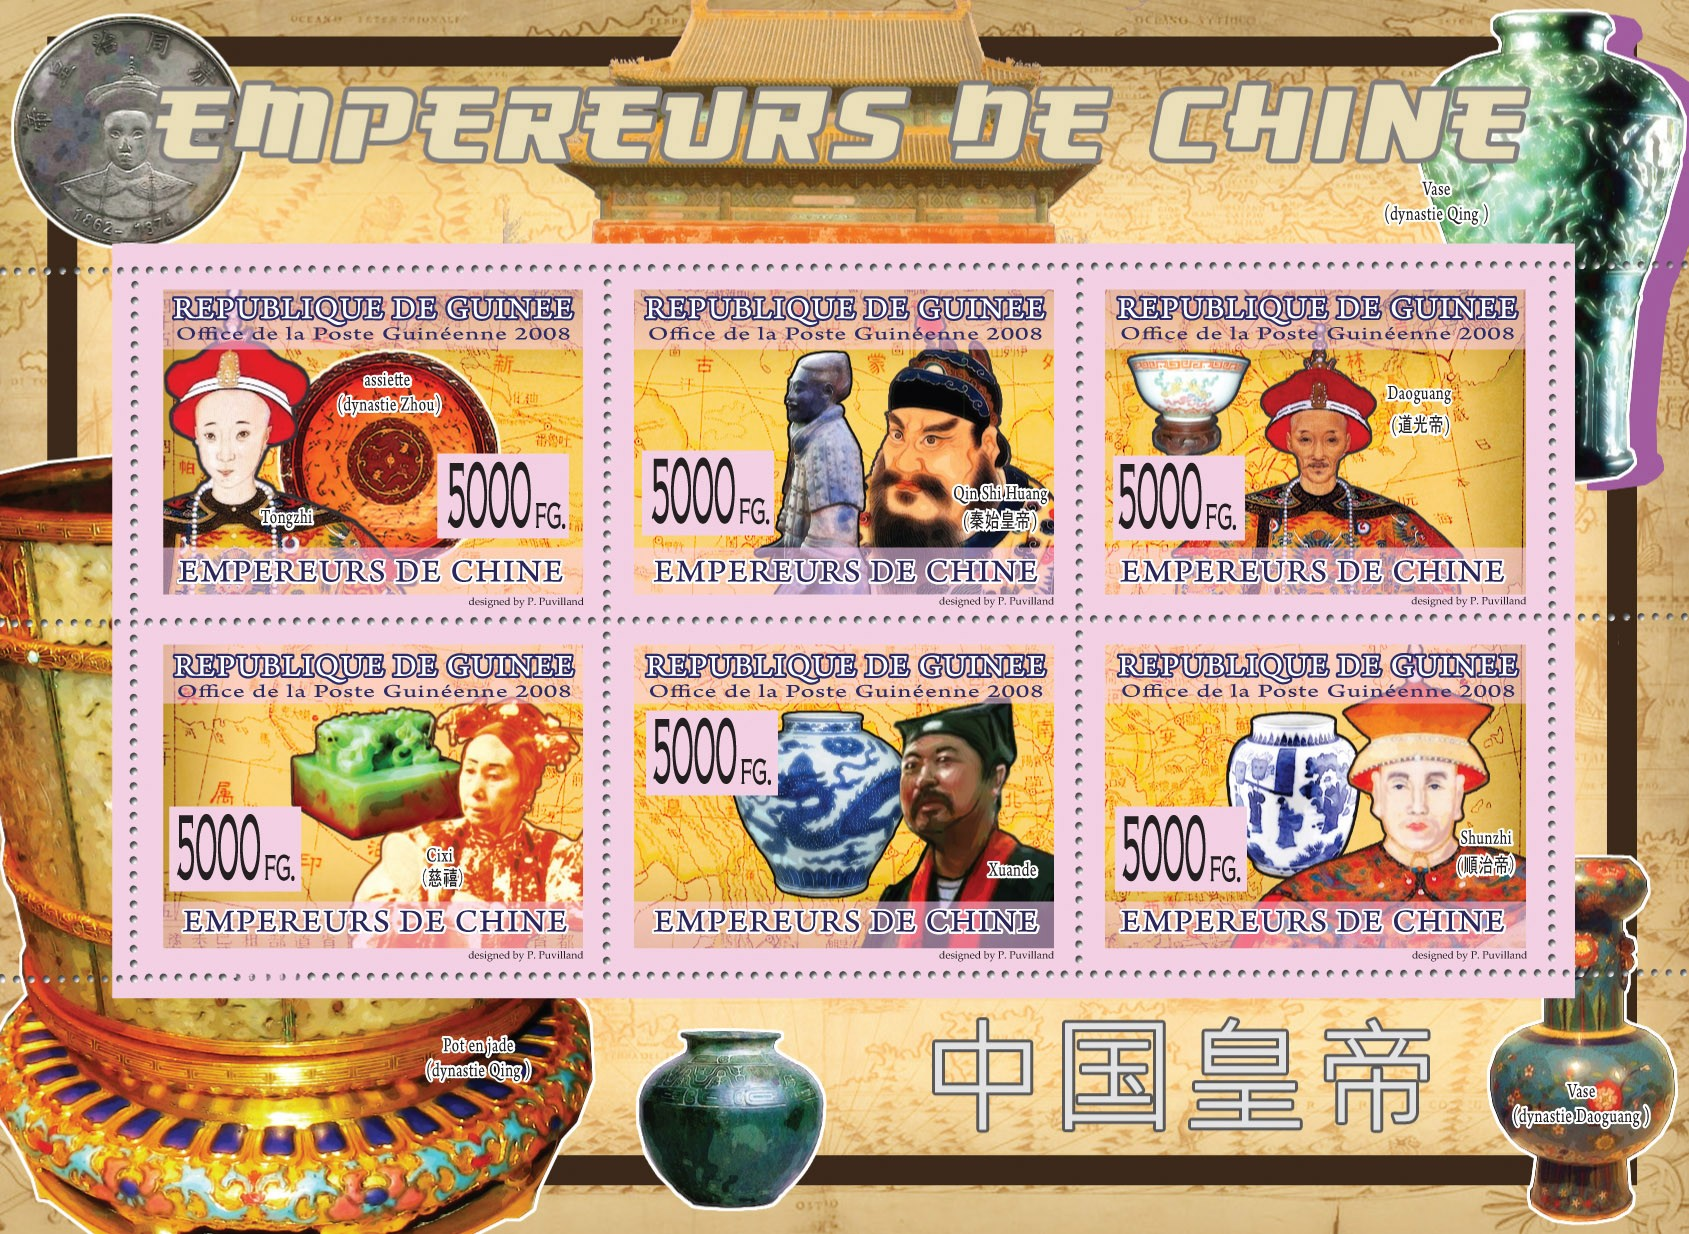 EMPERORS OF CHINA   Tongzhi, Qin Shi Huang, Daoguang, Cixi, Xuande, Shunzhi - Issue of Guinée postage stamps